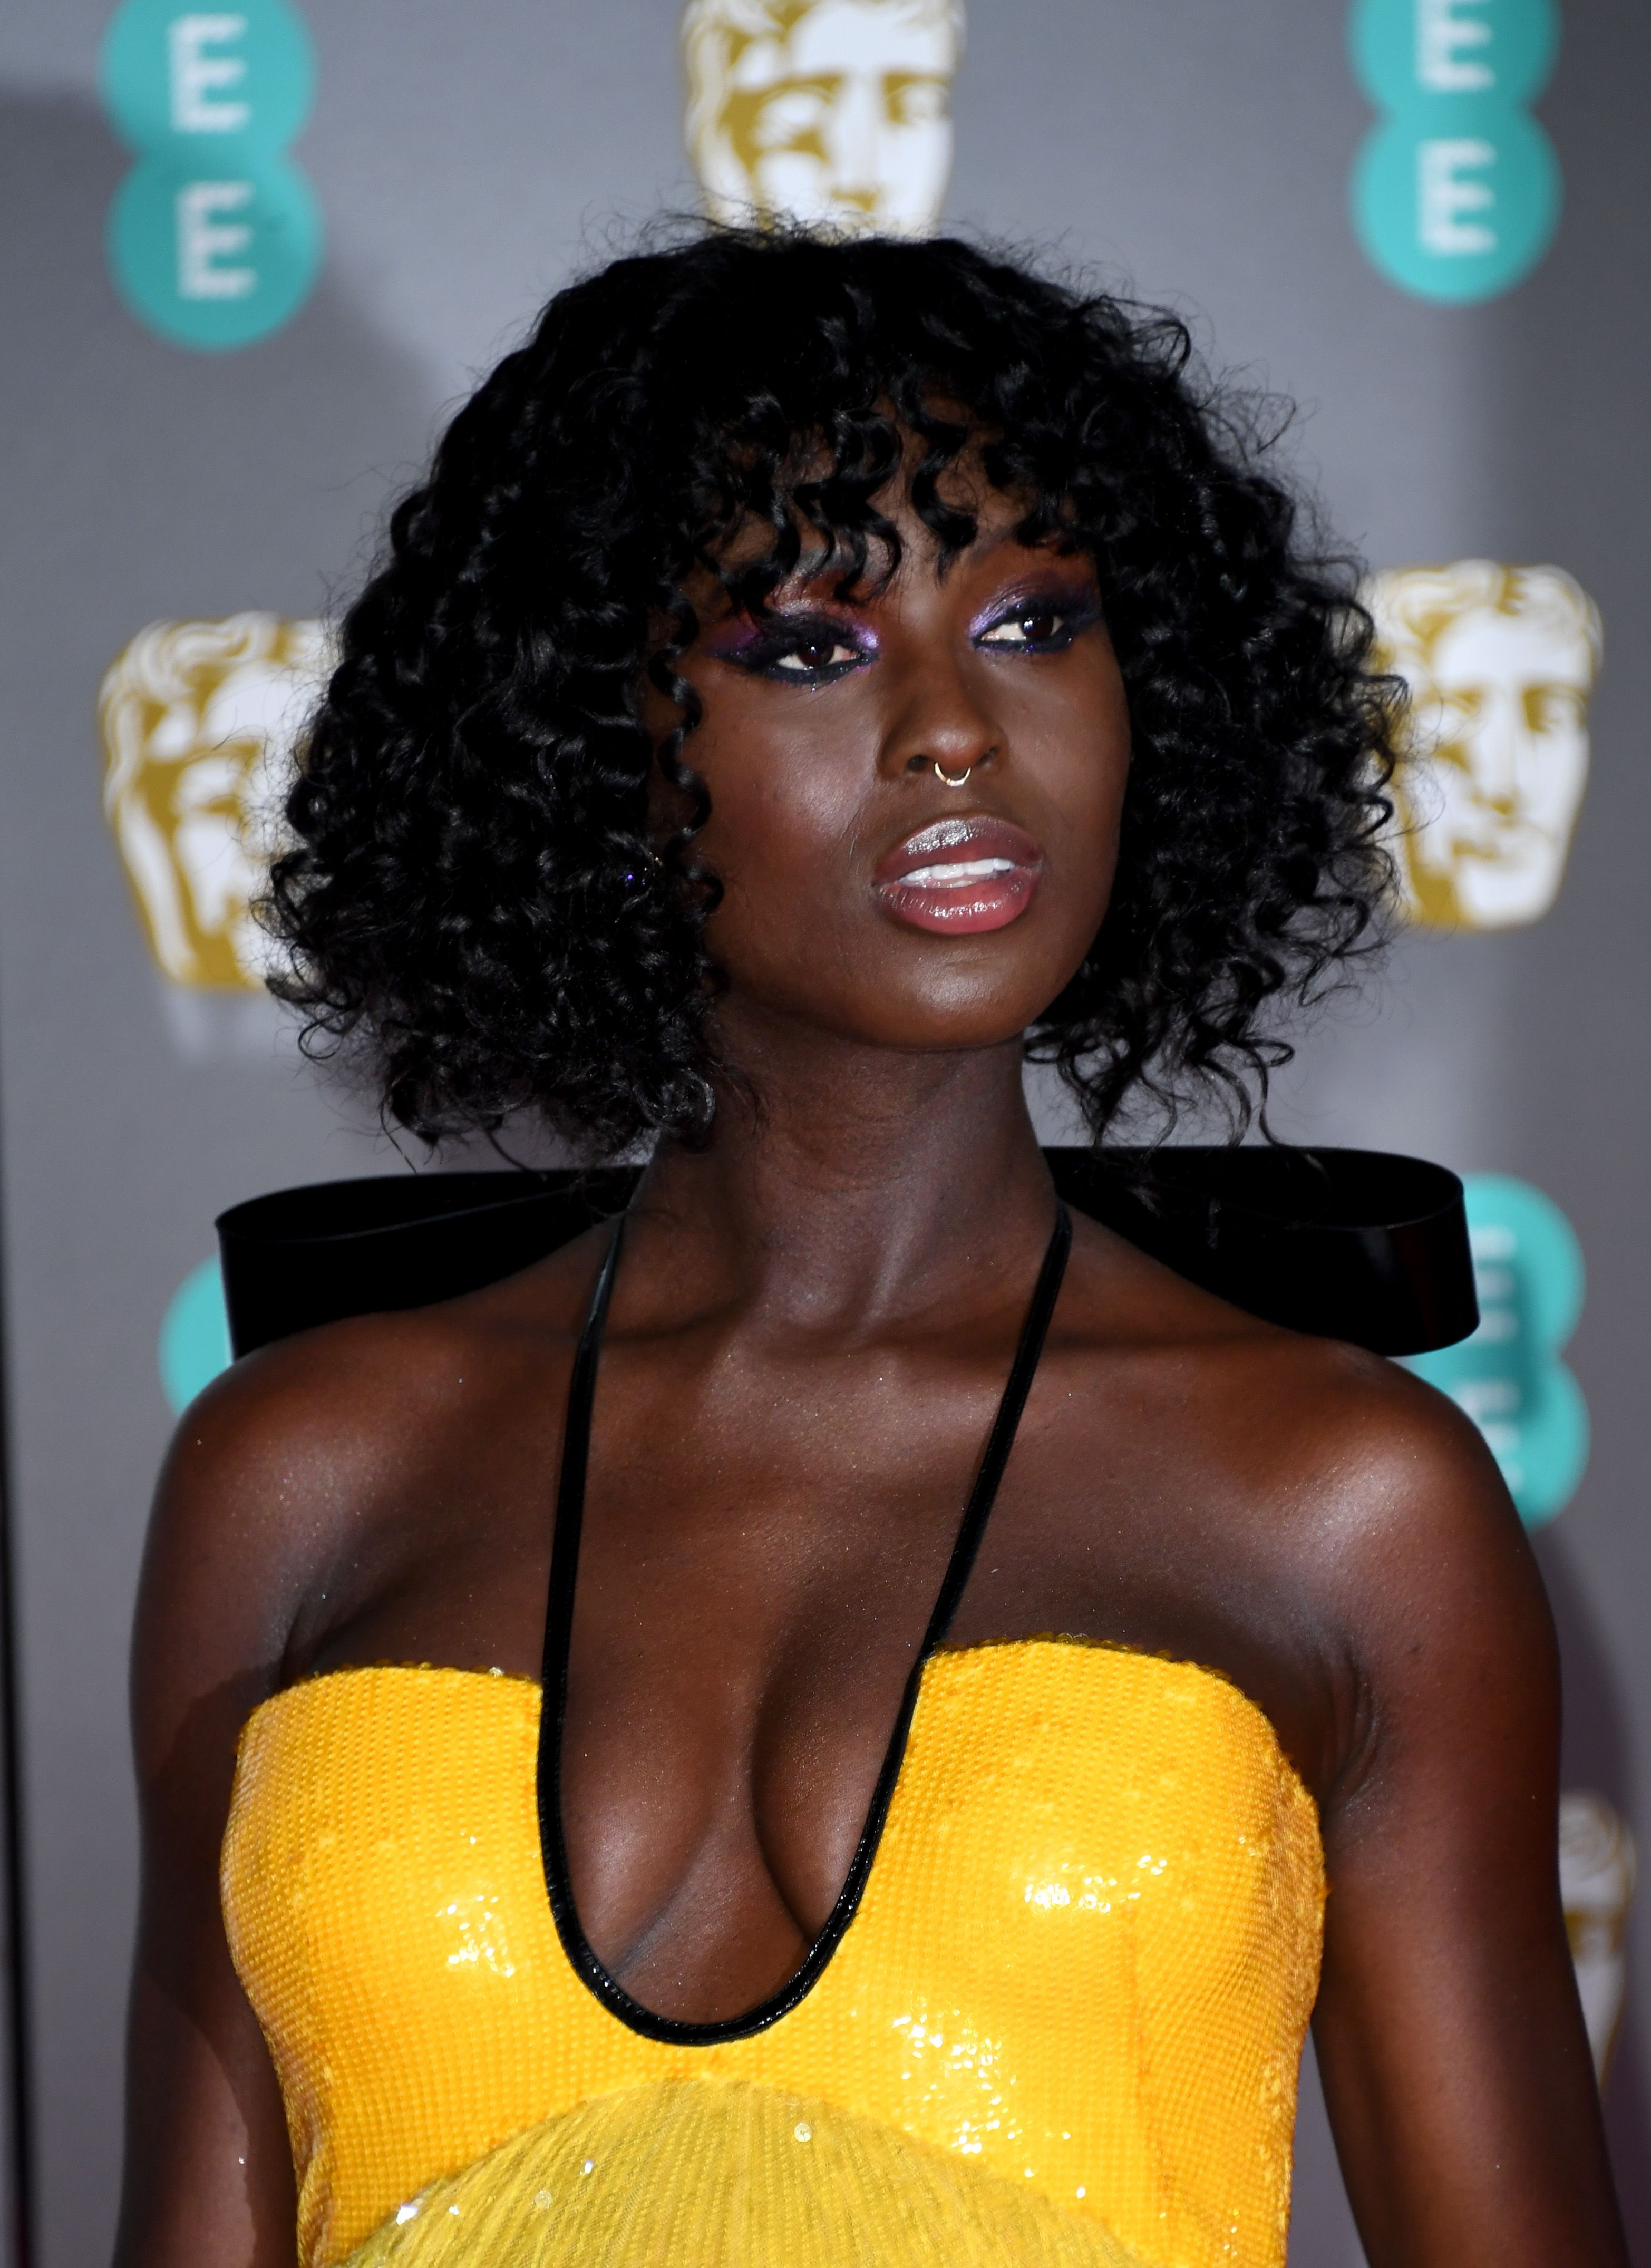 So, Jodie Turner-Smith uses breast milk in her skincare routine